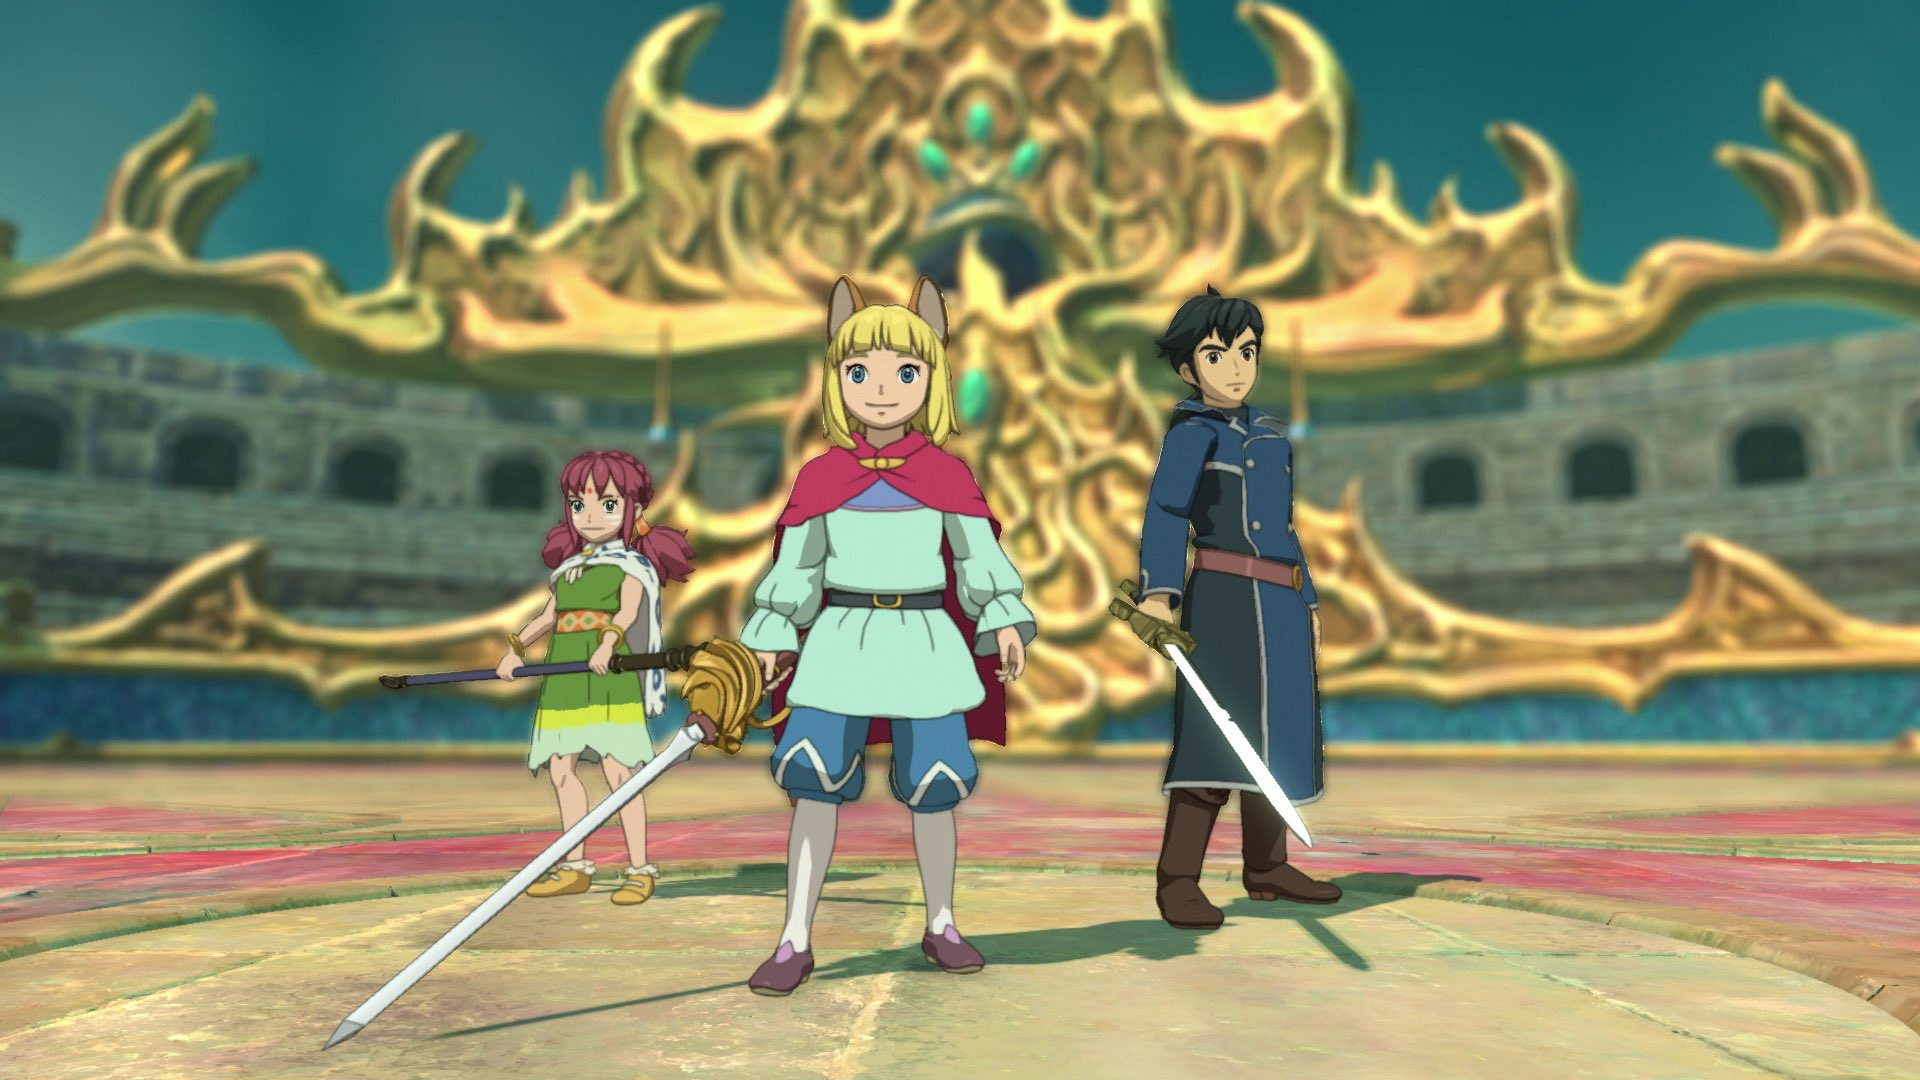 Evan, the main character of Ni No Kuni II: Revenant Kingdom